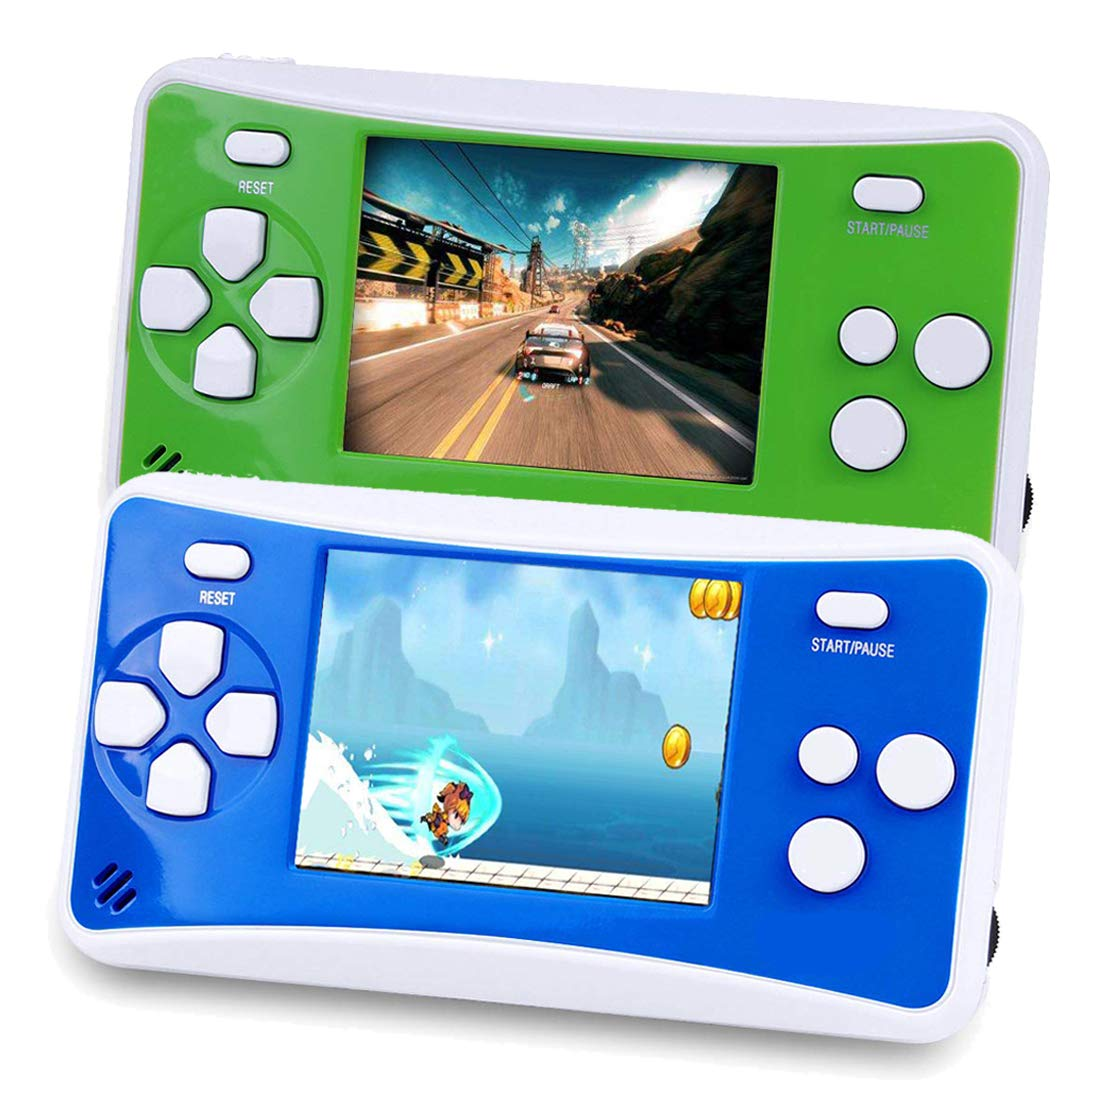 2 Packs Handheld Game Console for Children,The 80's Arcade Retro Game Player with 2.5'' 8-Bit LCD Portable Video Games Can Connected TV,Built-in 152 Classic Old School Game(Green and Blue) by Sokolp (Image #1)